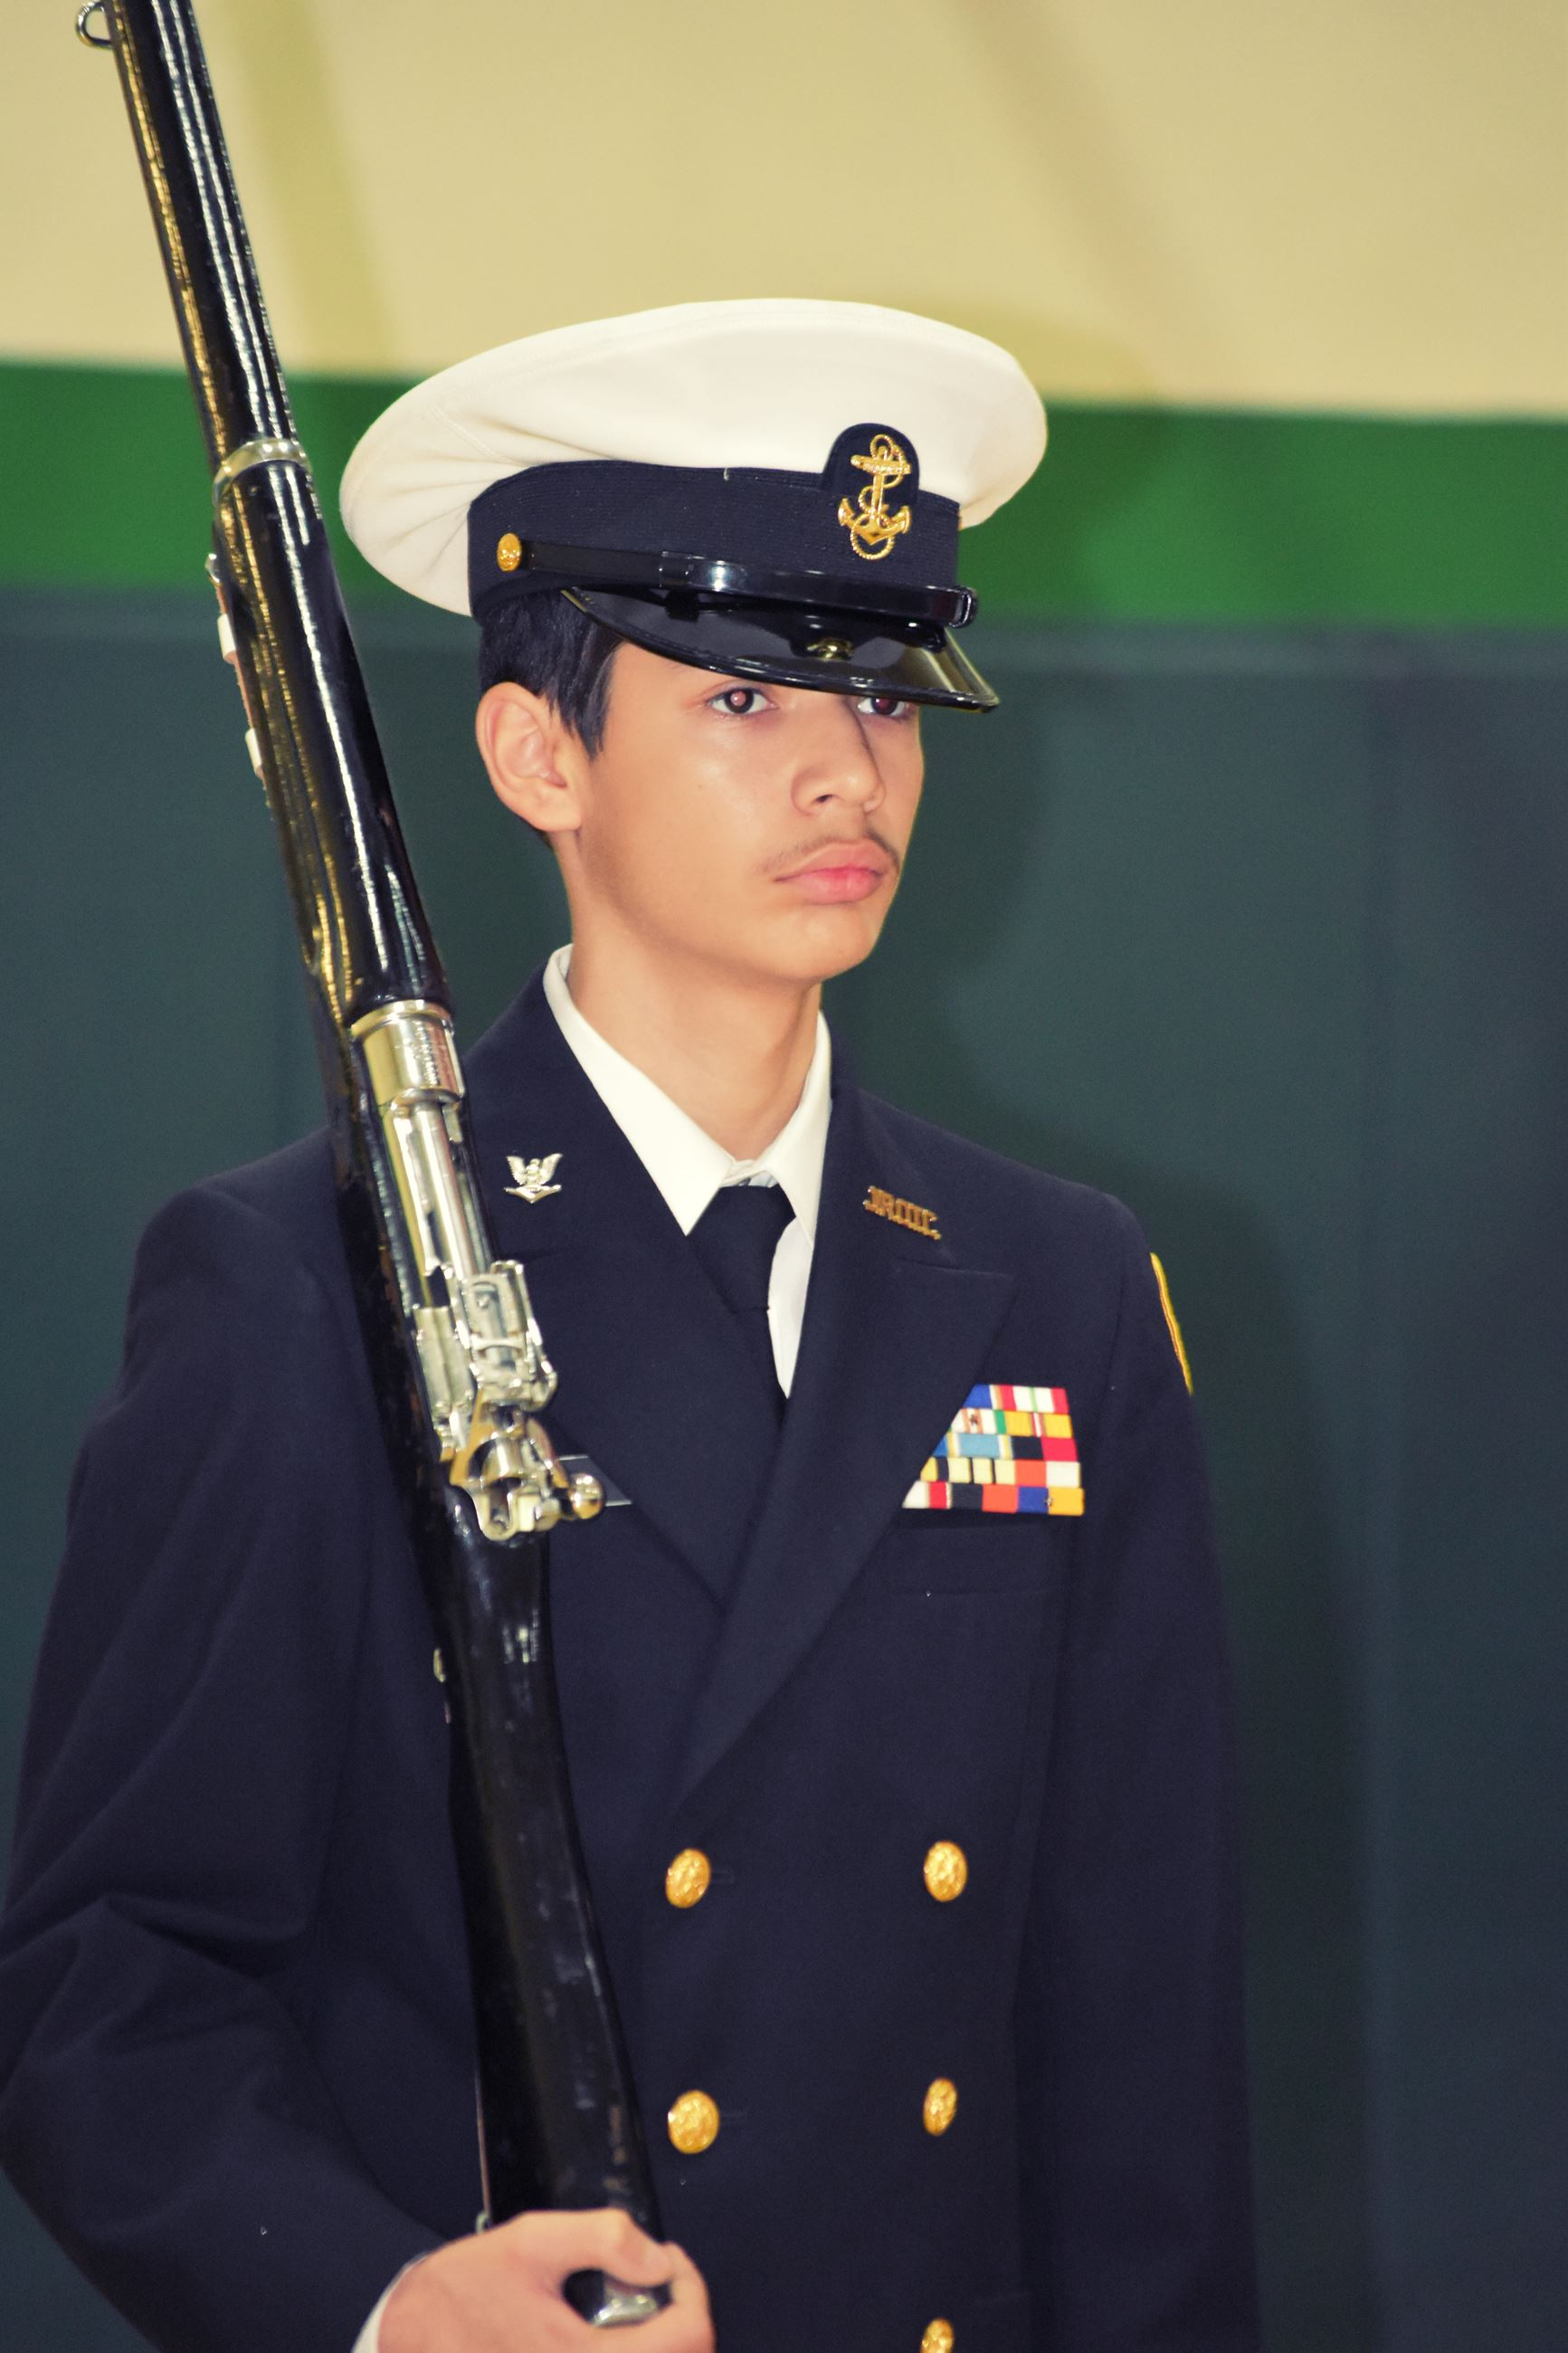 ROTC Rifle